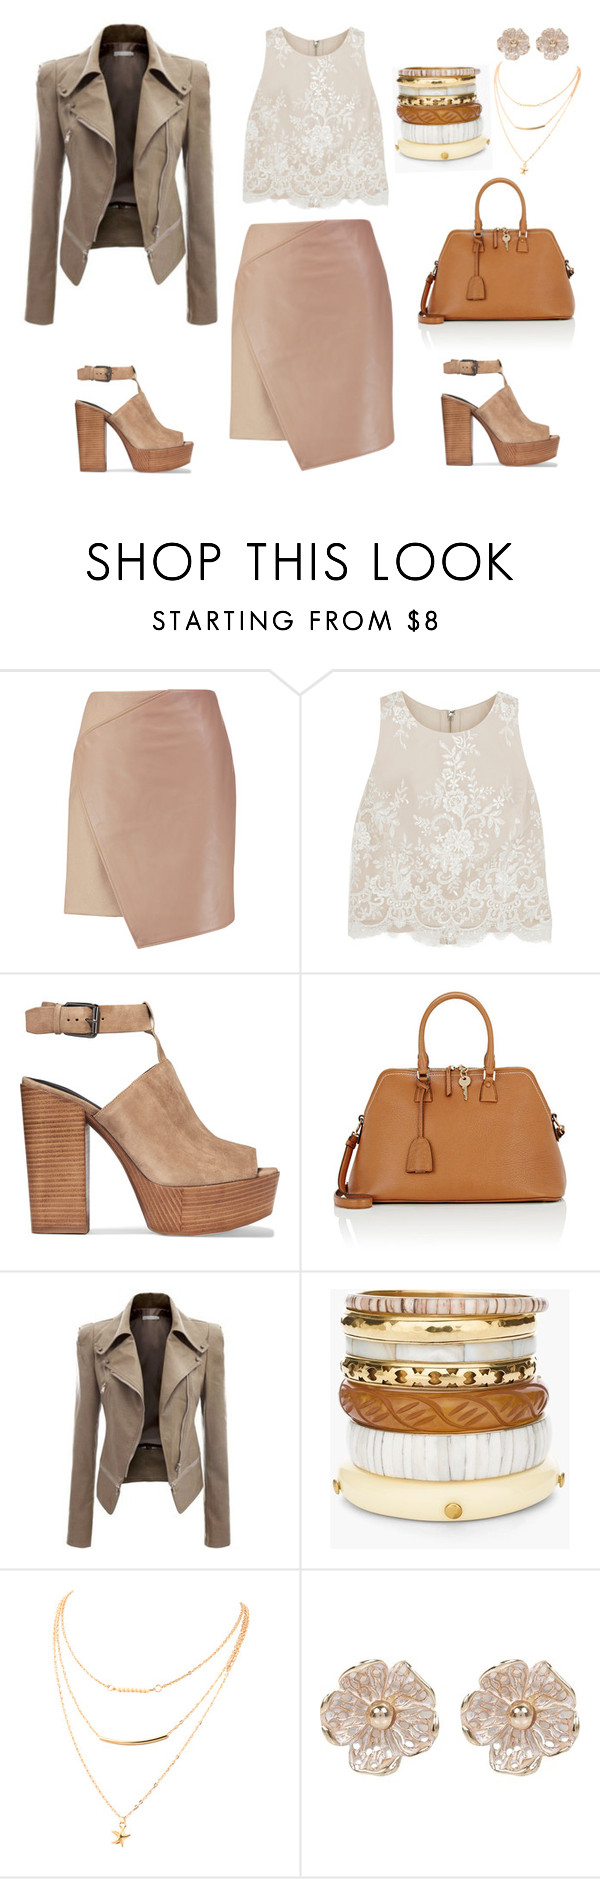 """""""Untitled #193"""" by blossomsbeauty on Polyvore featuring Carven, Alice + Olivia, Rebecca Minkoff, Maison Margiela, Chico's and River Island"""